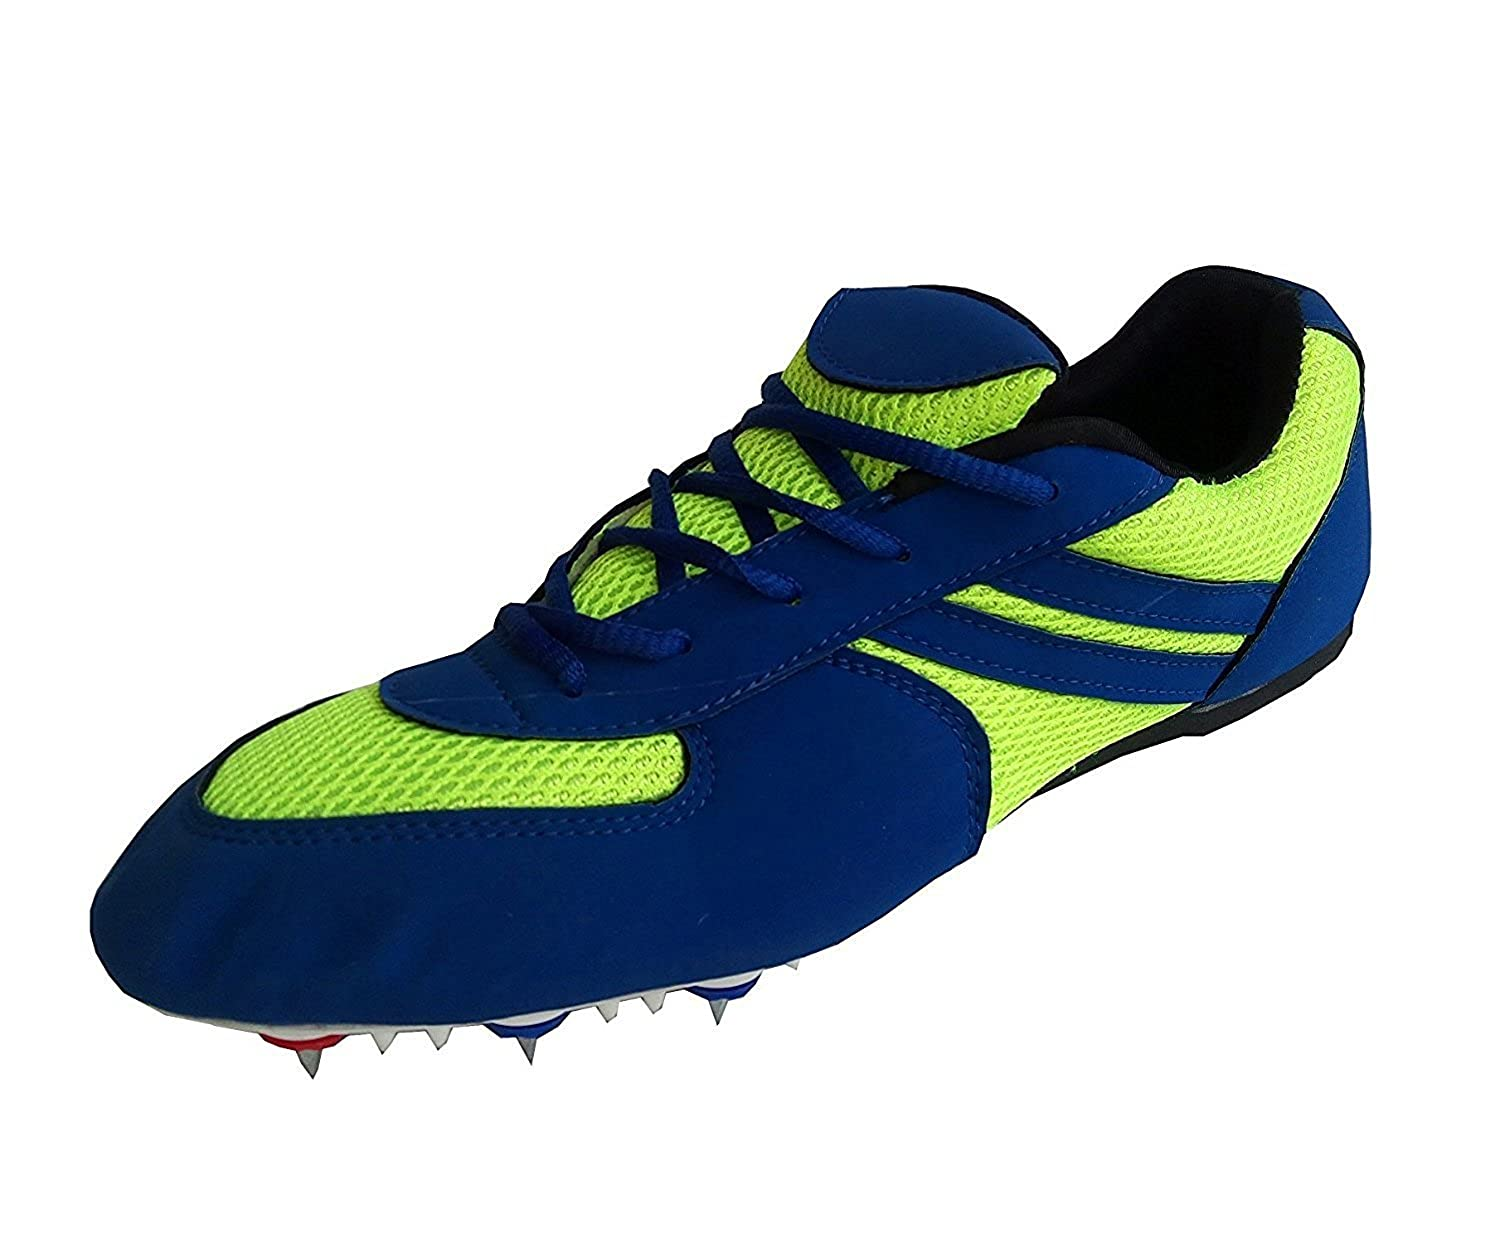 Victall Sports Half-Spike Athletic